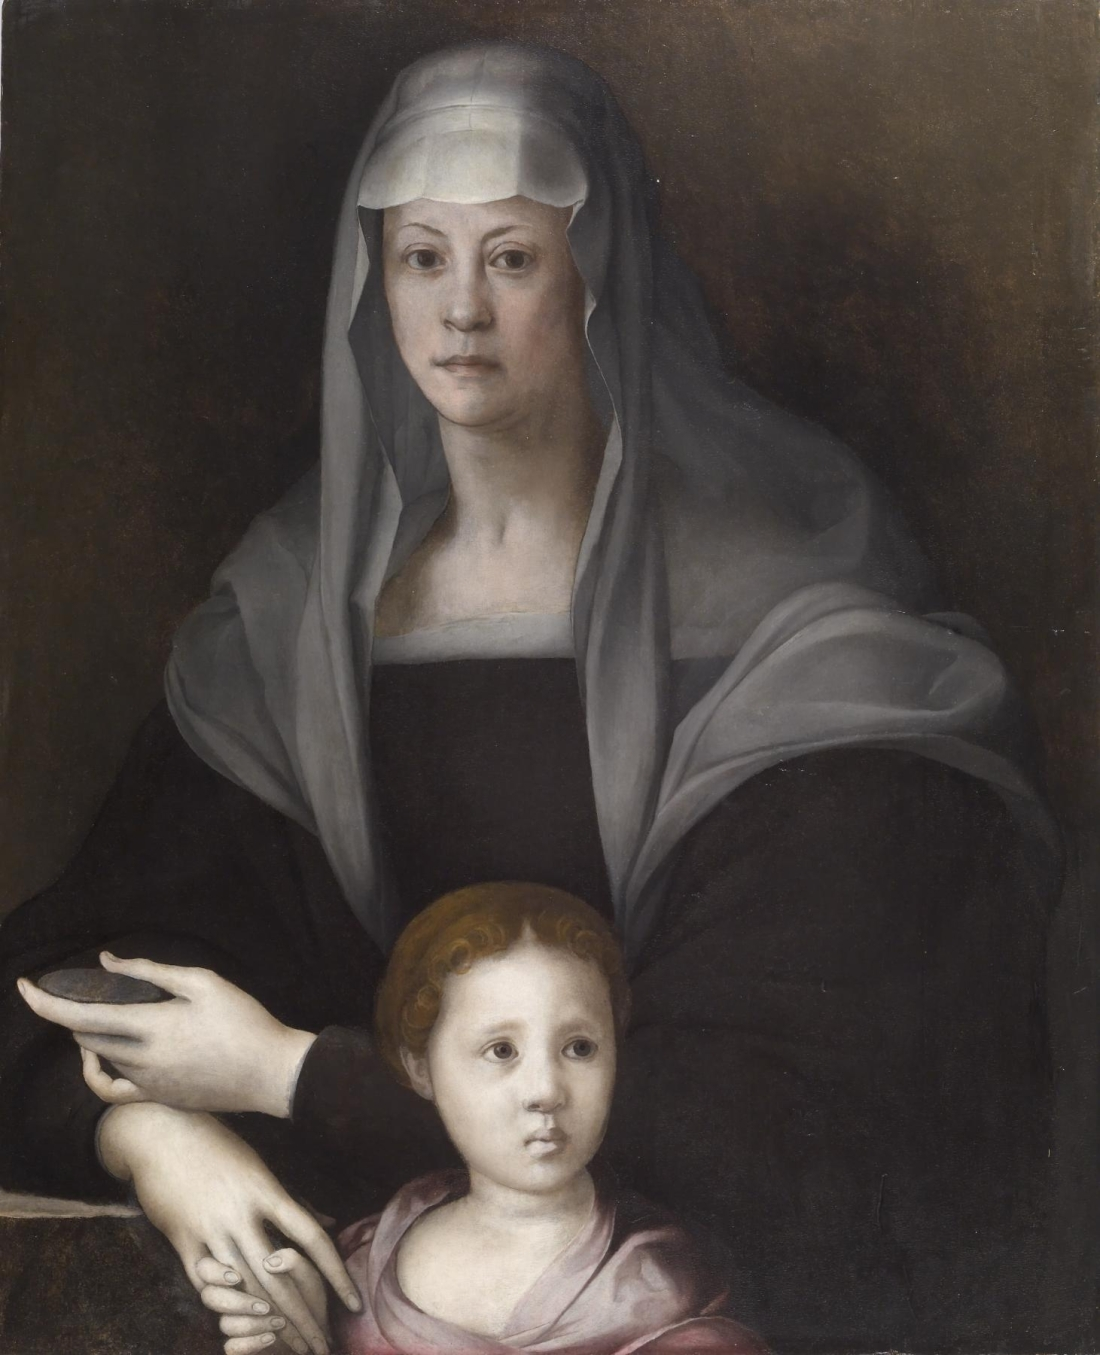 Jacopo Pontormo, Portrait of Maria Salviati de' Medici and Giulia de' Medici, ca. 1539. Collection of the Walters Art Museum.